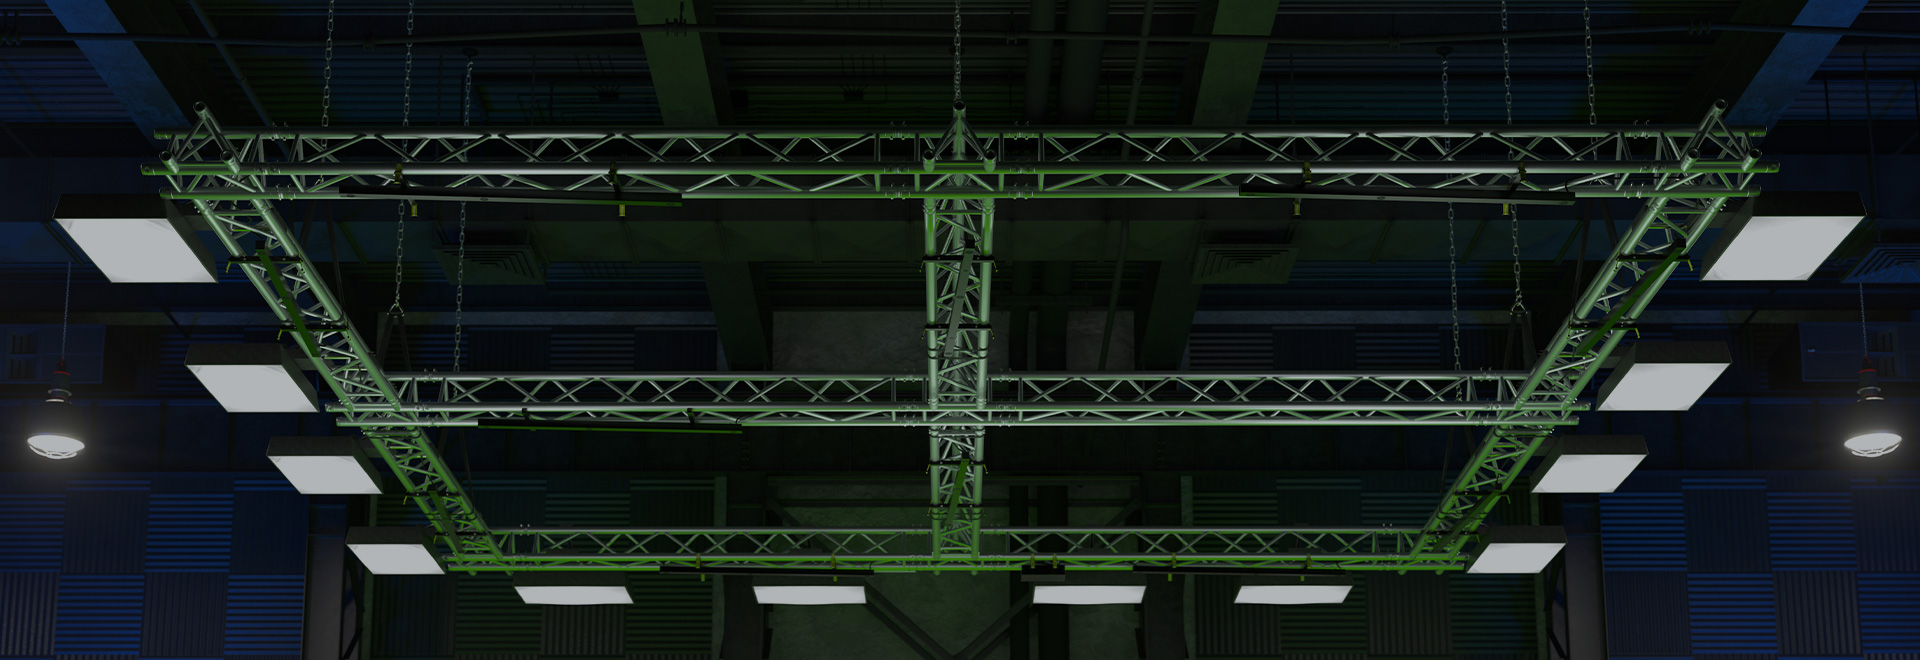 Truss tracking area